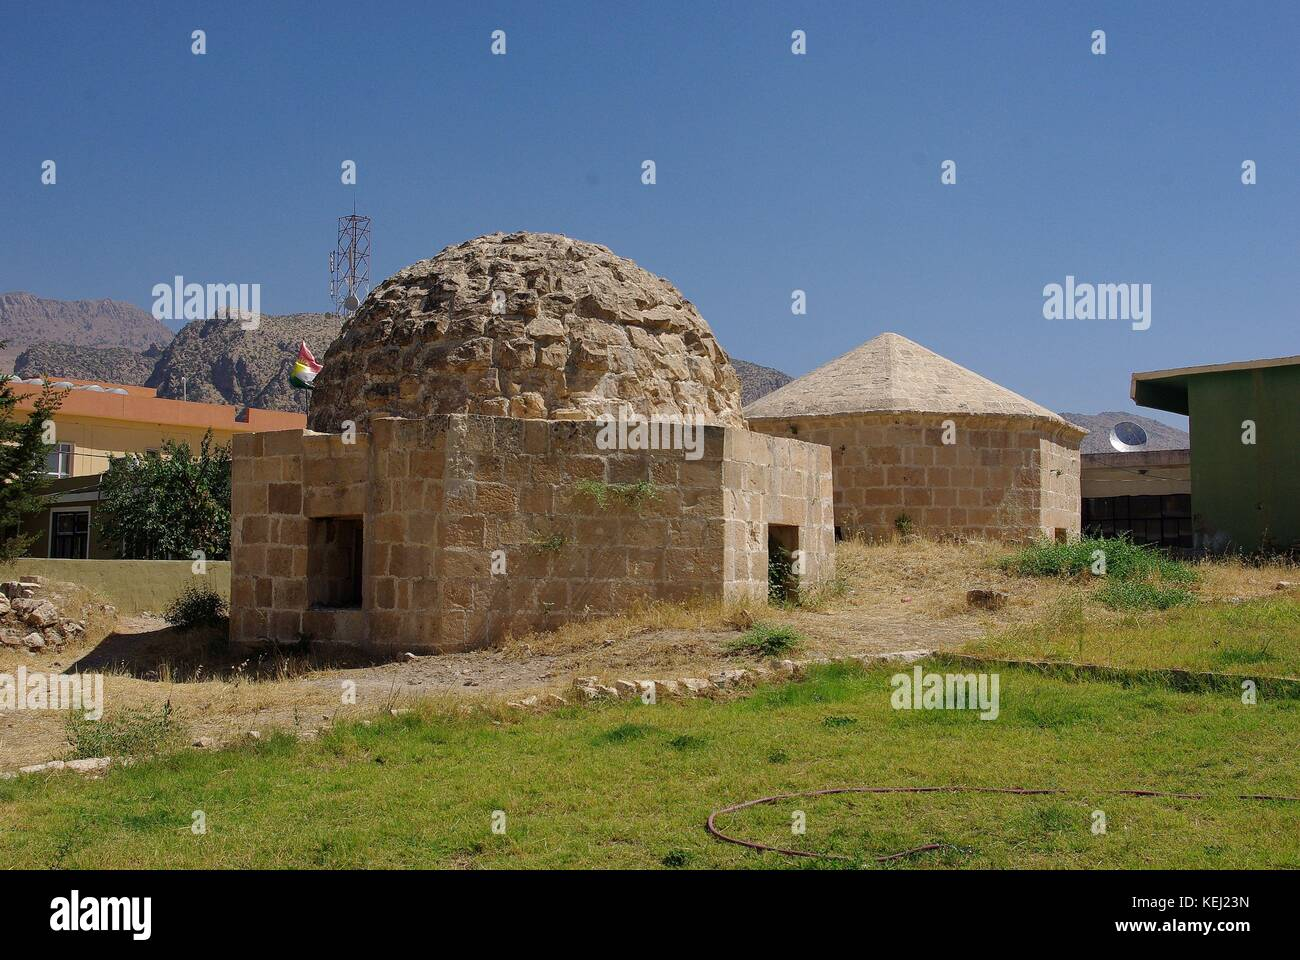 the old town of Amedi (Amediyah) in Iraq - Kurdistan - Stock Image